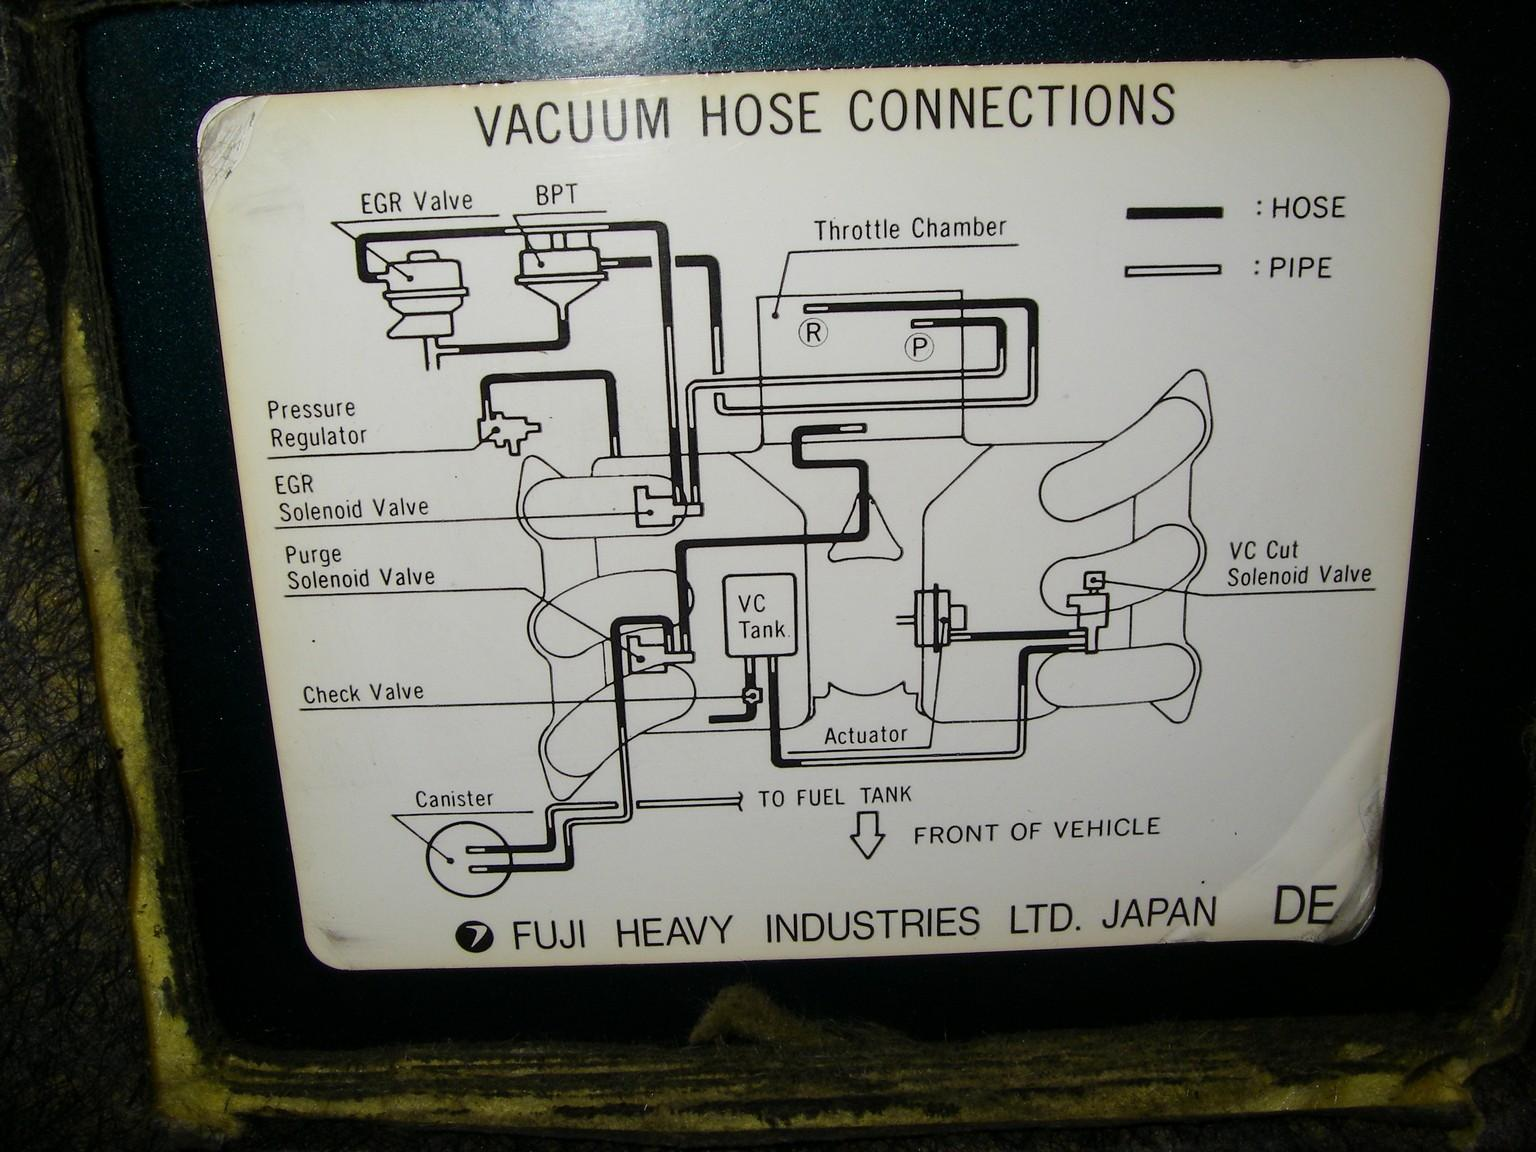 Vanagon View Topic 88 Syncro Doka Eg33 Conversion Uglies Wiring Diagram Image May Have Been Reduced In Size Click To Fullscreen